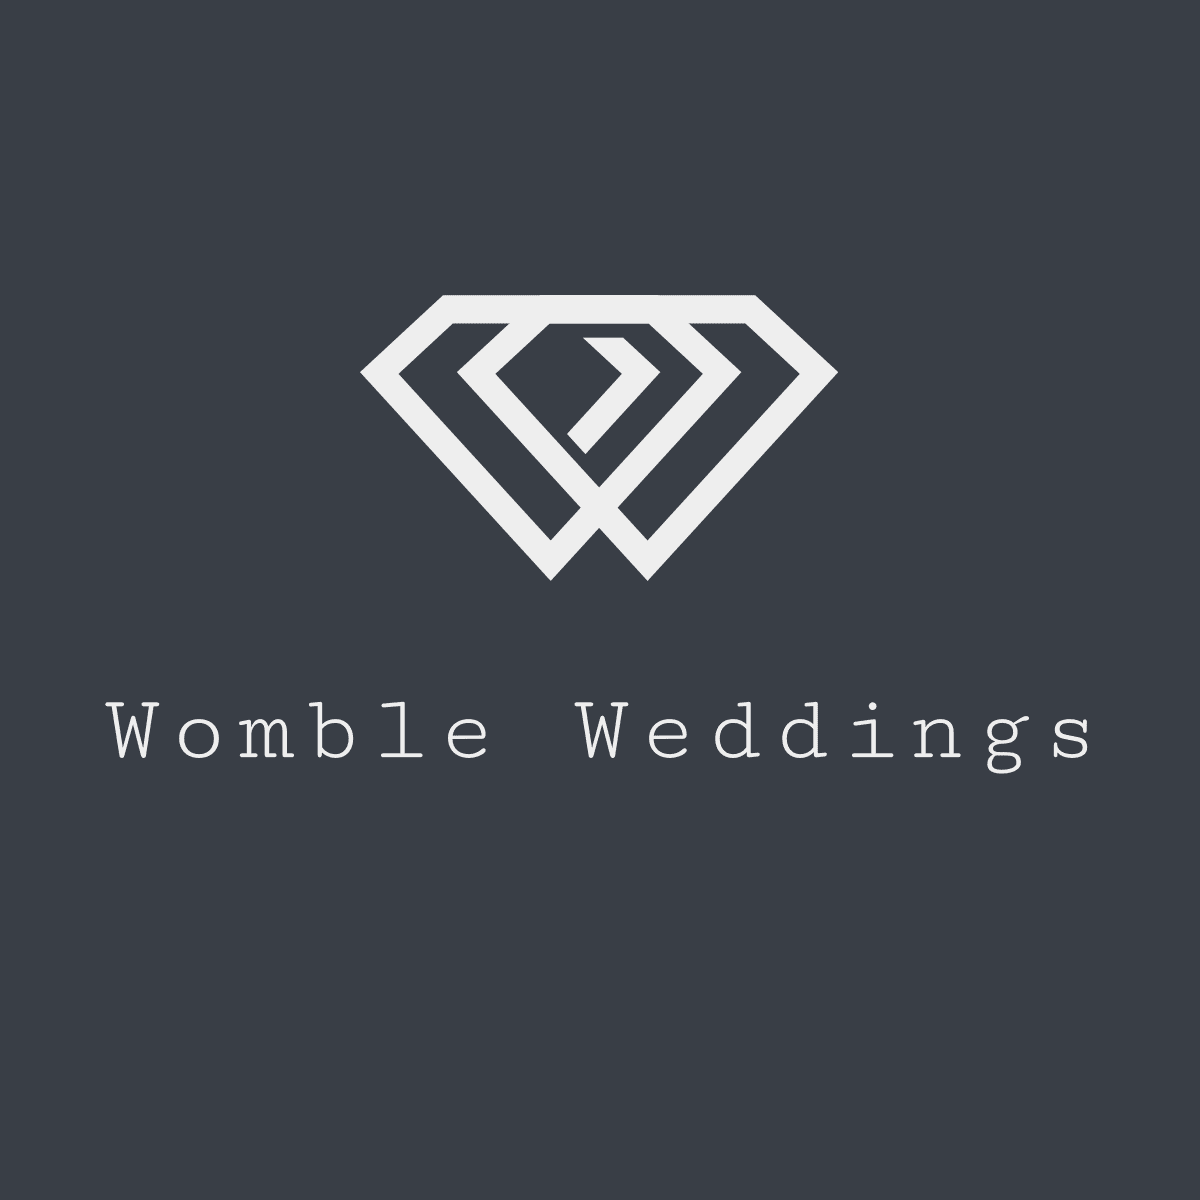 Womble Weddings image